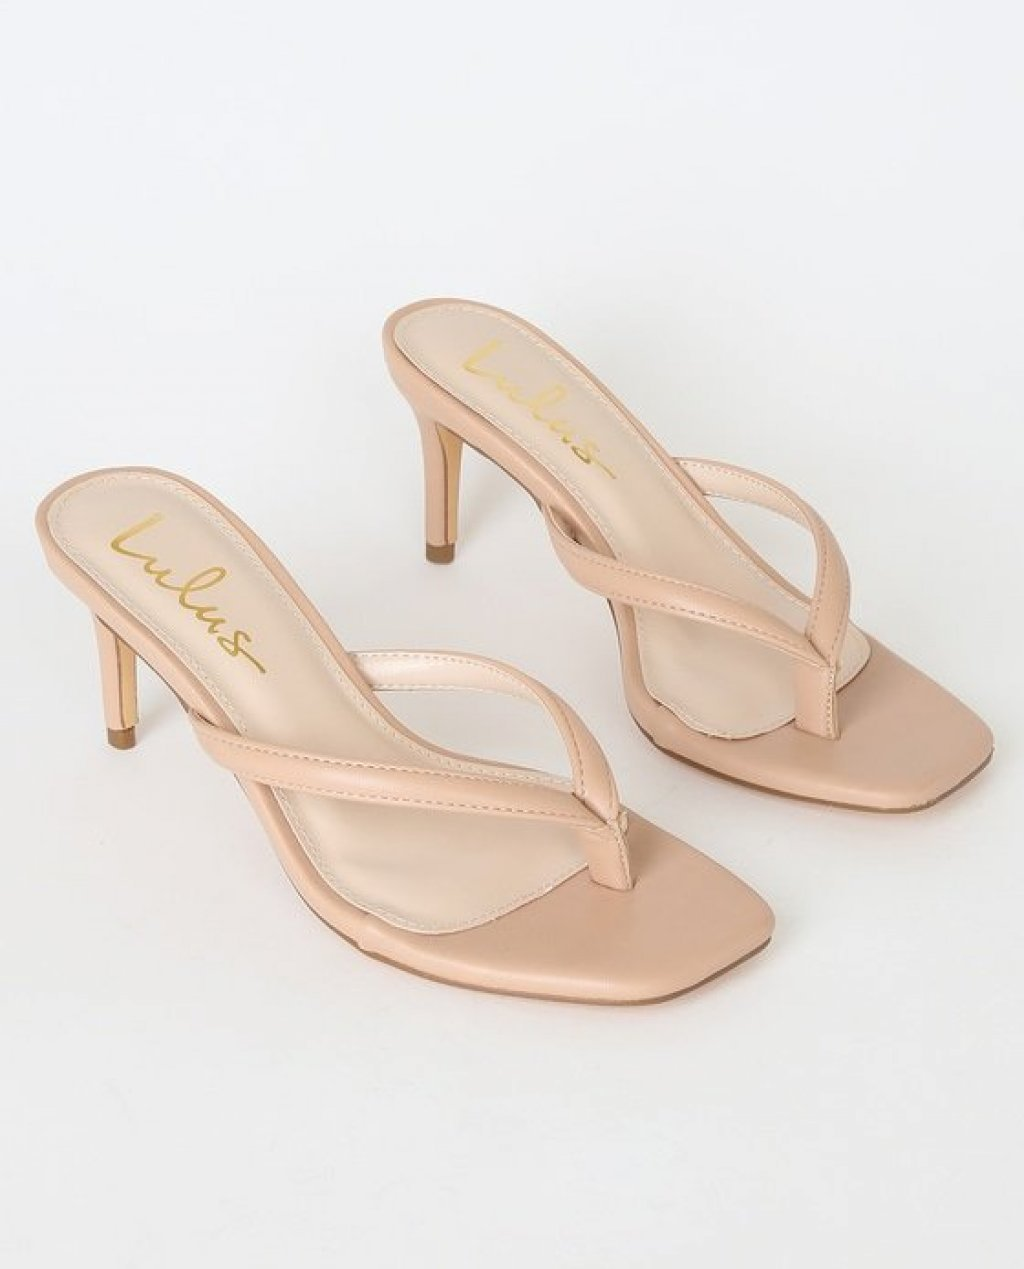 Scottie Nude High Heel Sandal Heels